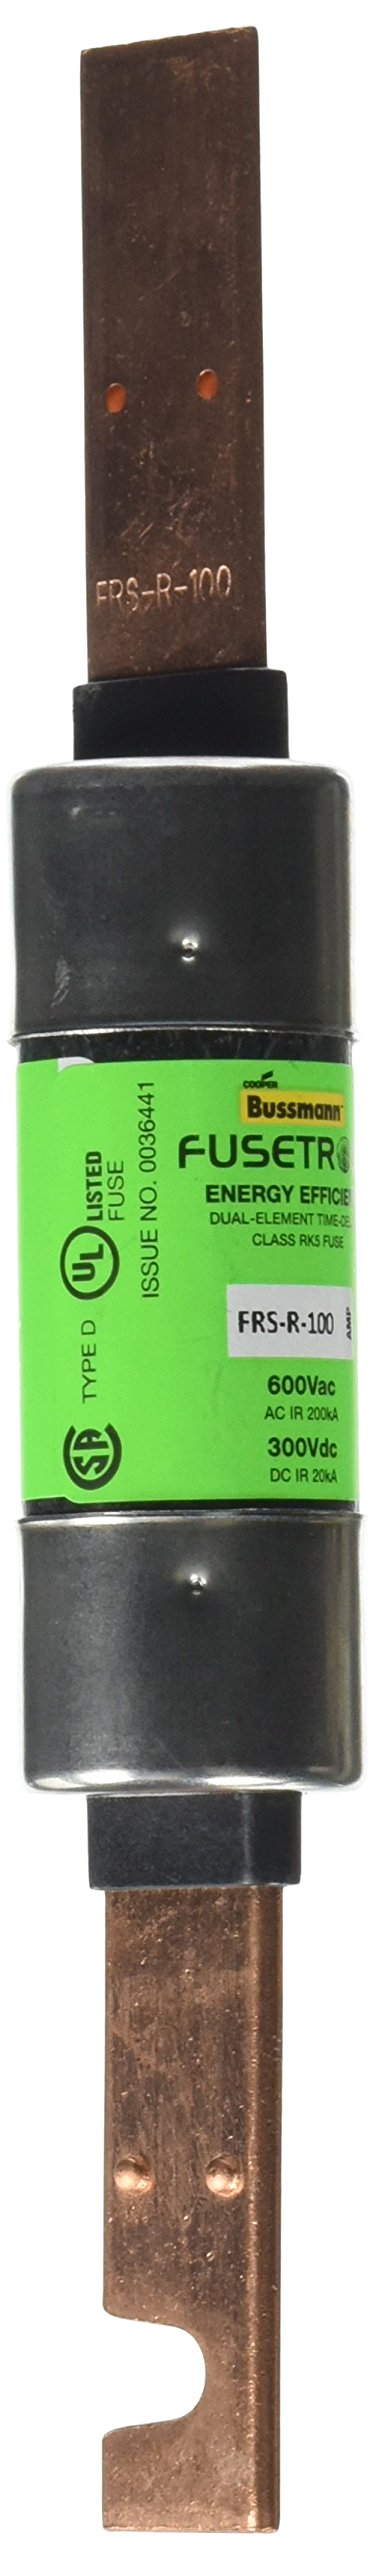 Bussmann FRS-R-100 100 Amp Fusetron Dual Element Time-Delay Current Limiting Class RK5 Fuse, 600V UL Listed